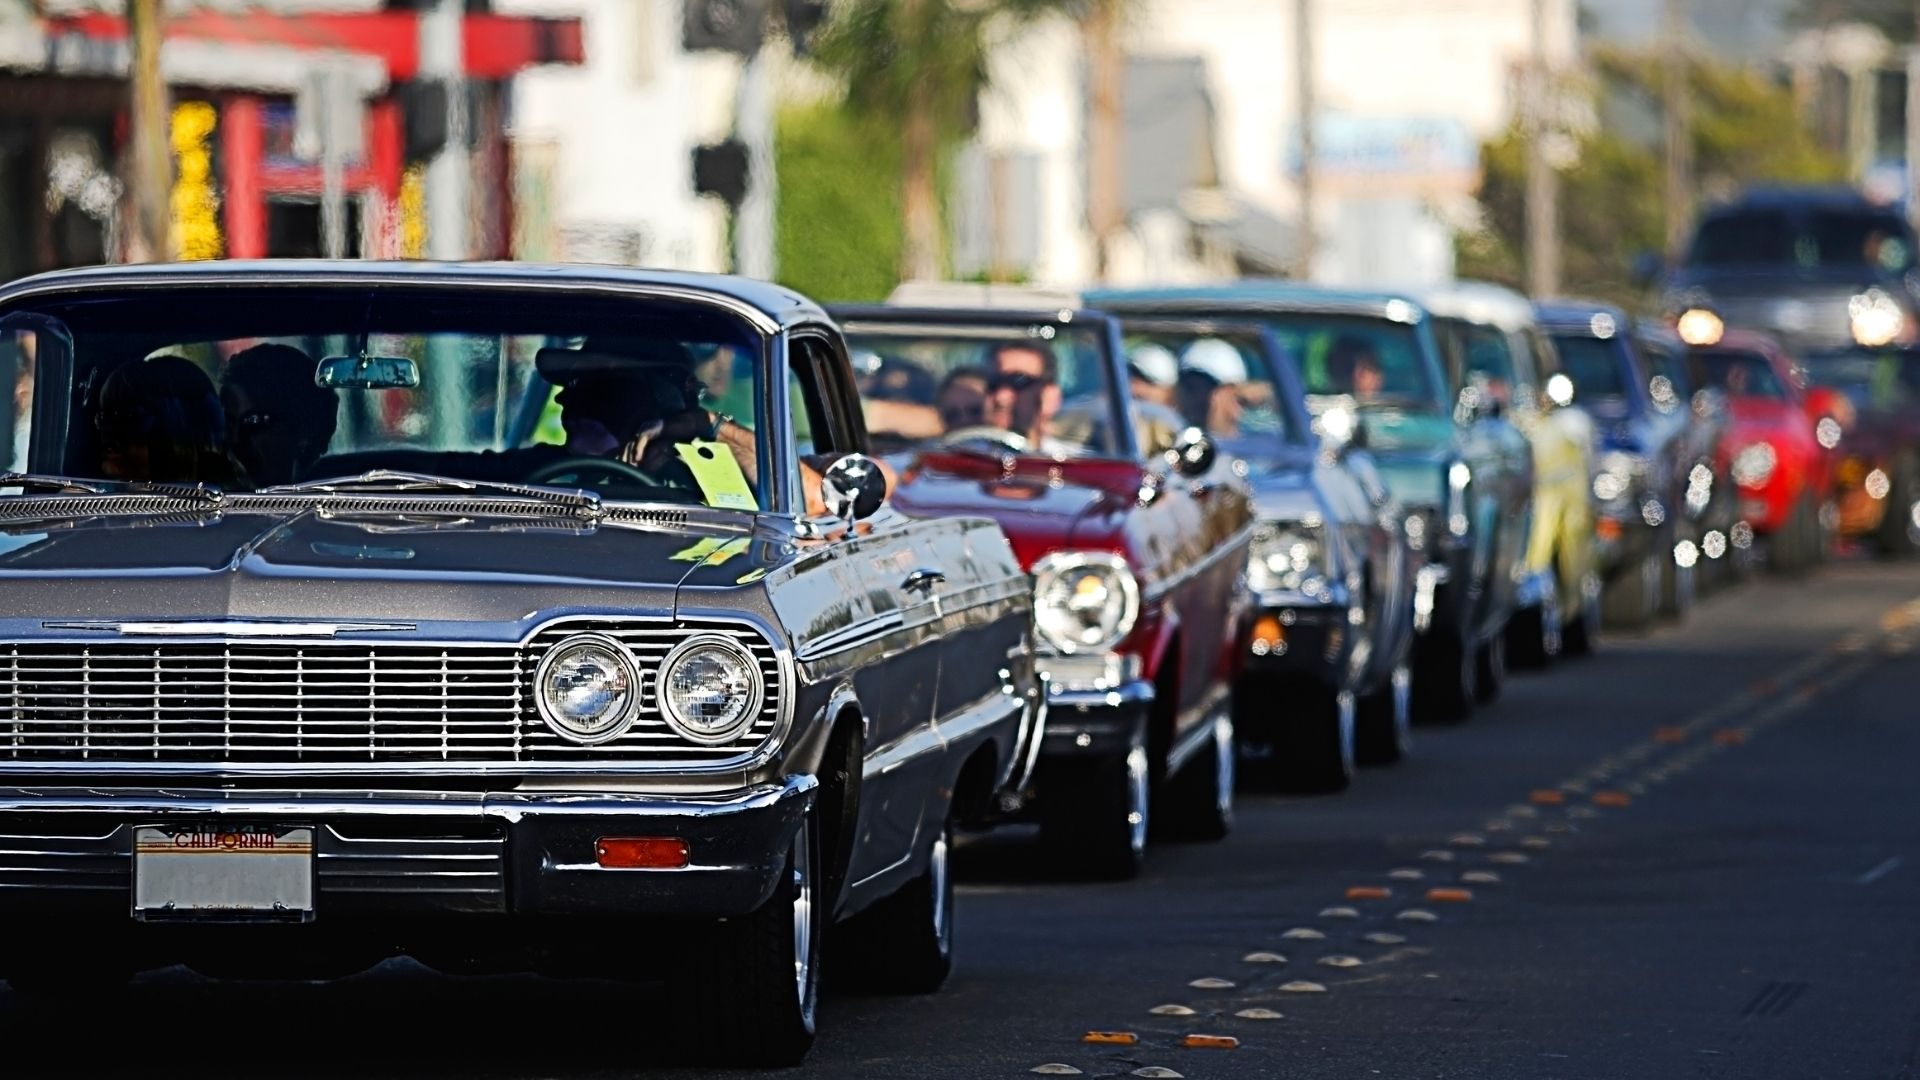 How To Find The Right Coverage for Restored Classic Cars